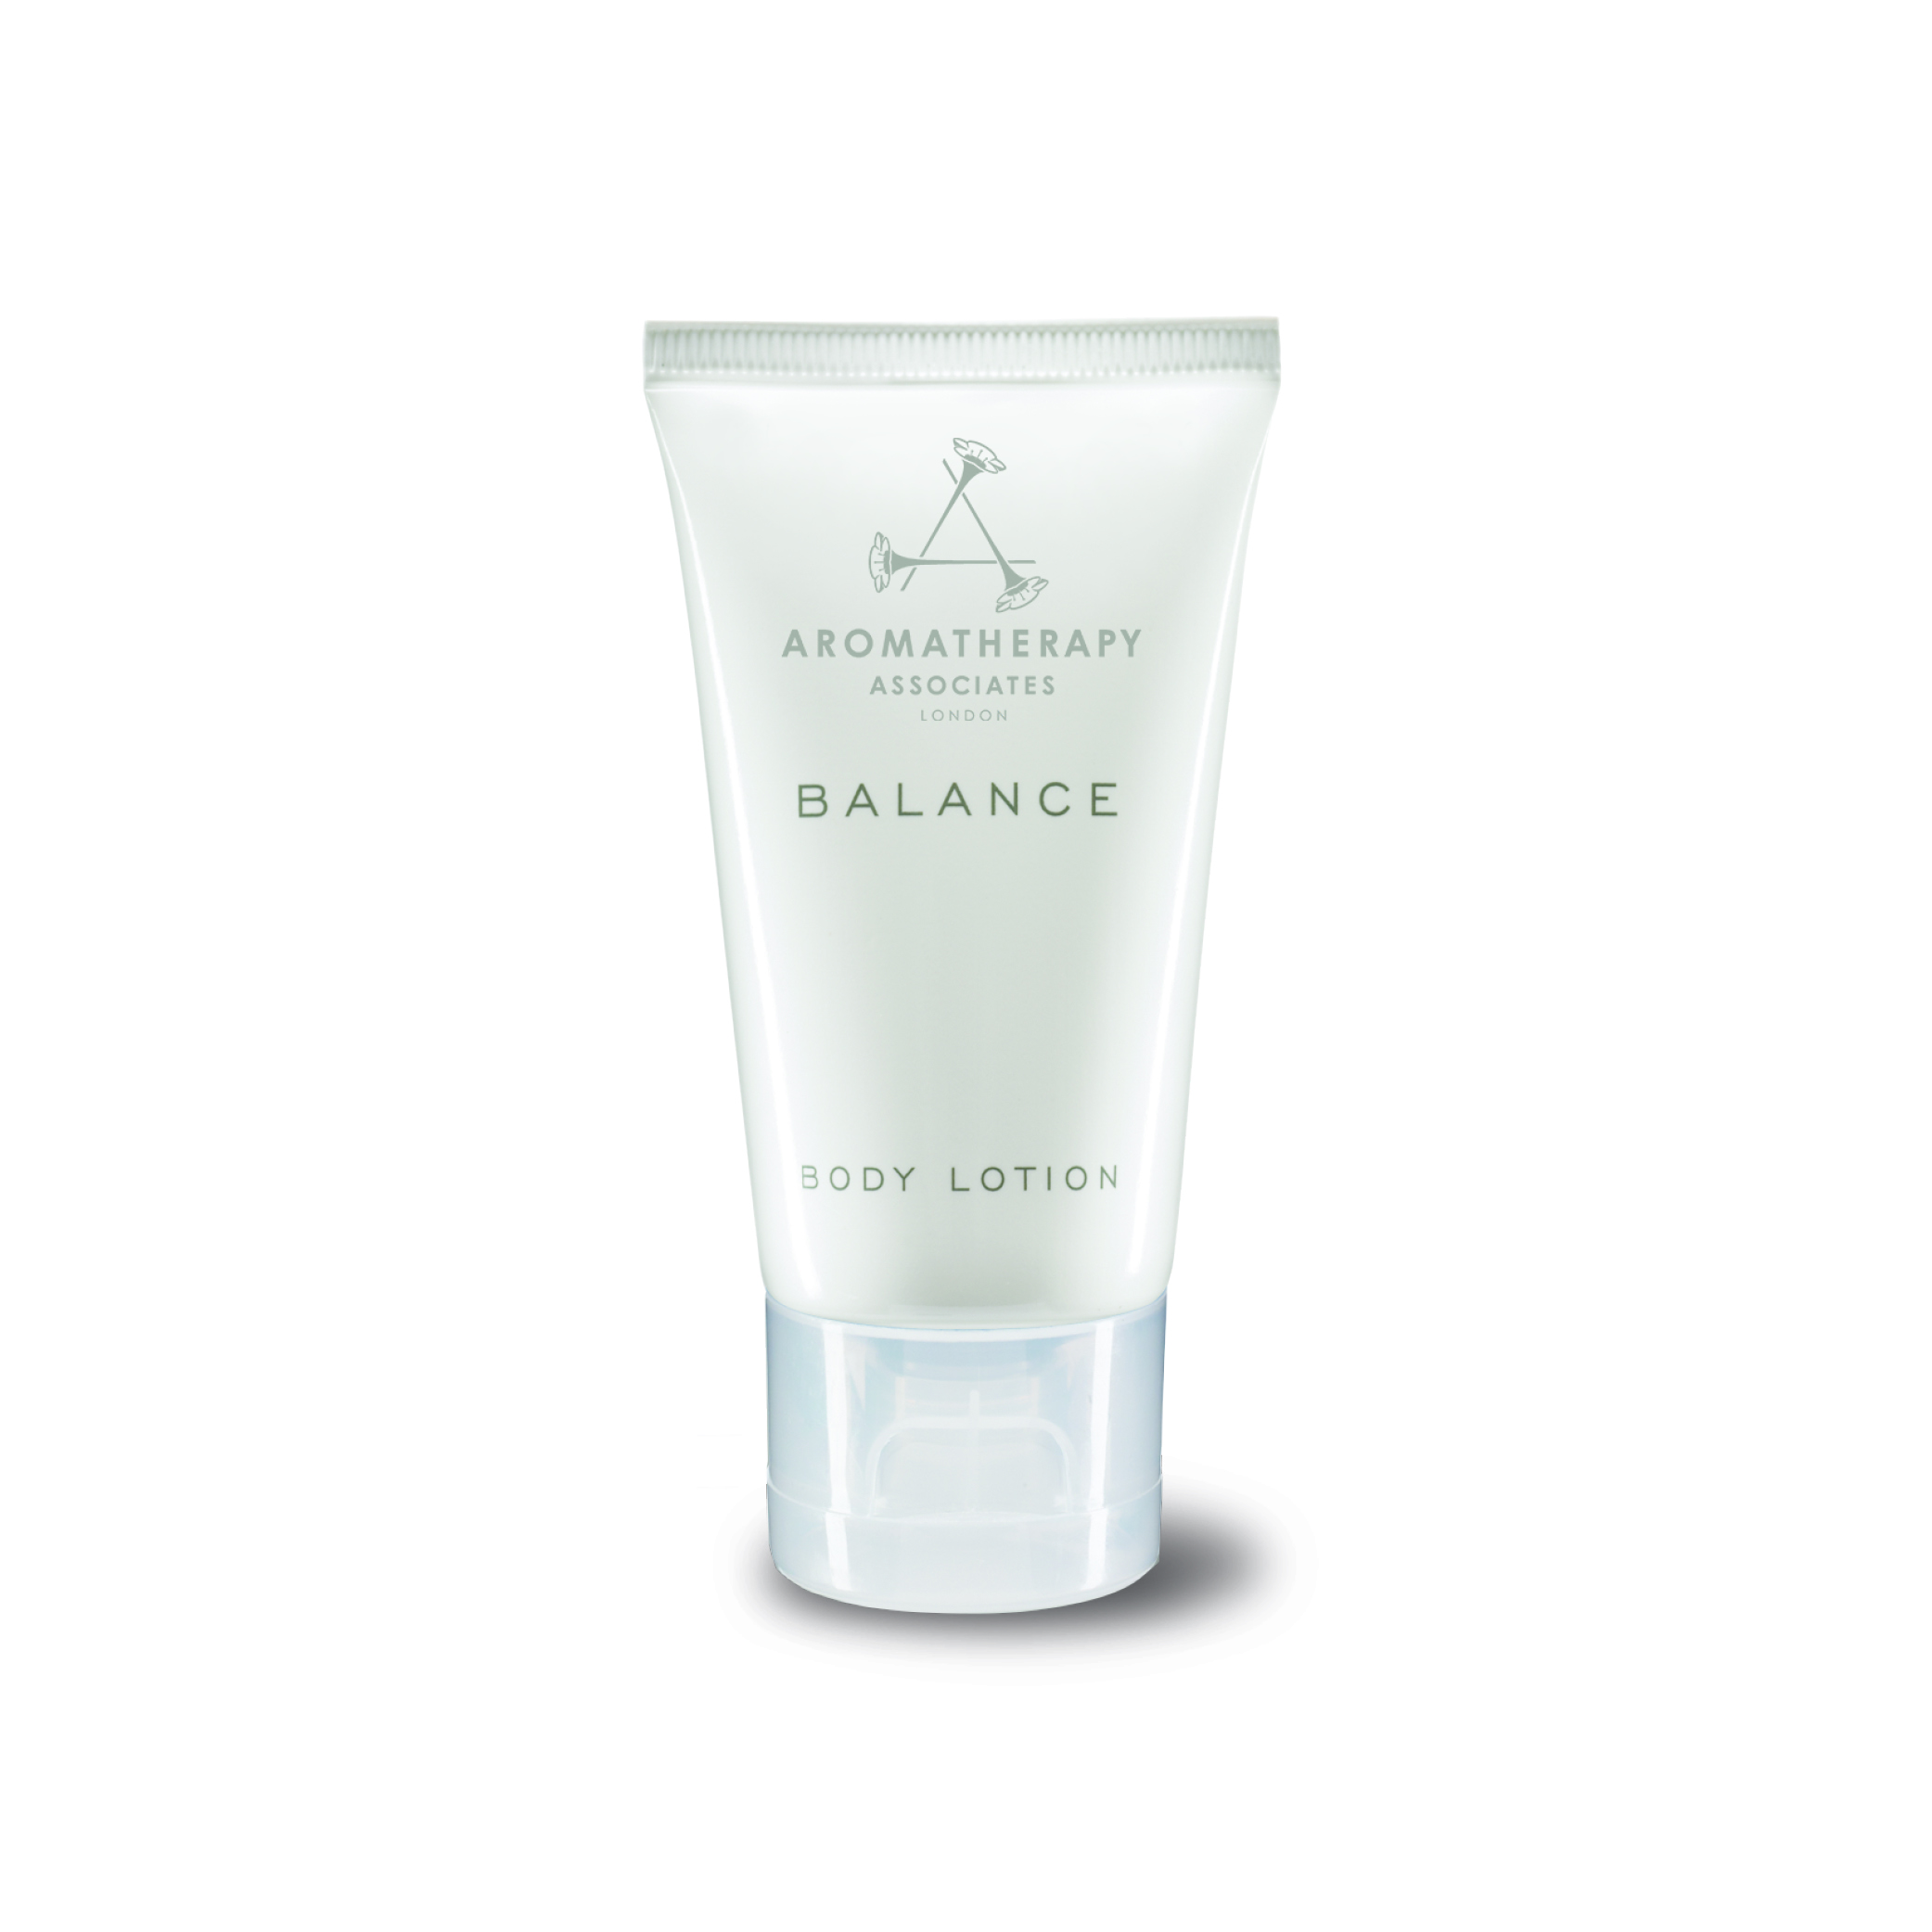 Aromatherapy Associates Balance Body Lotion 40ml